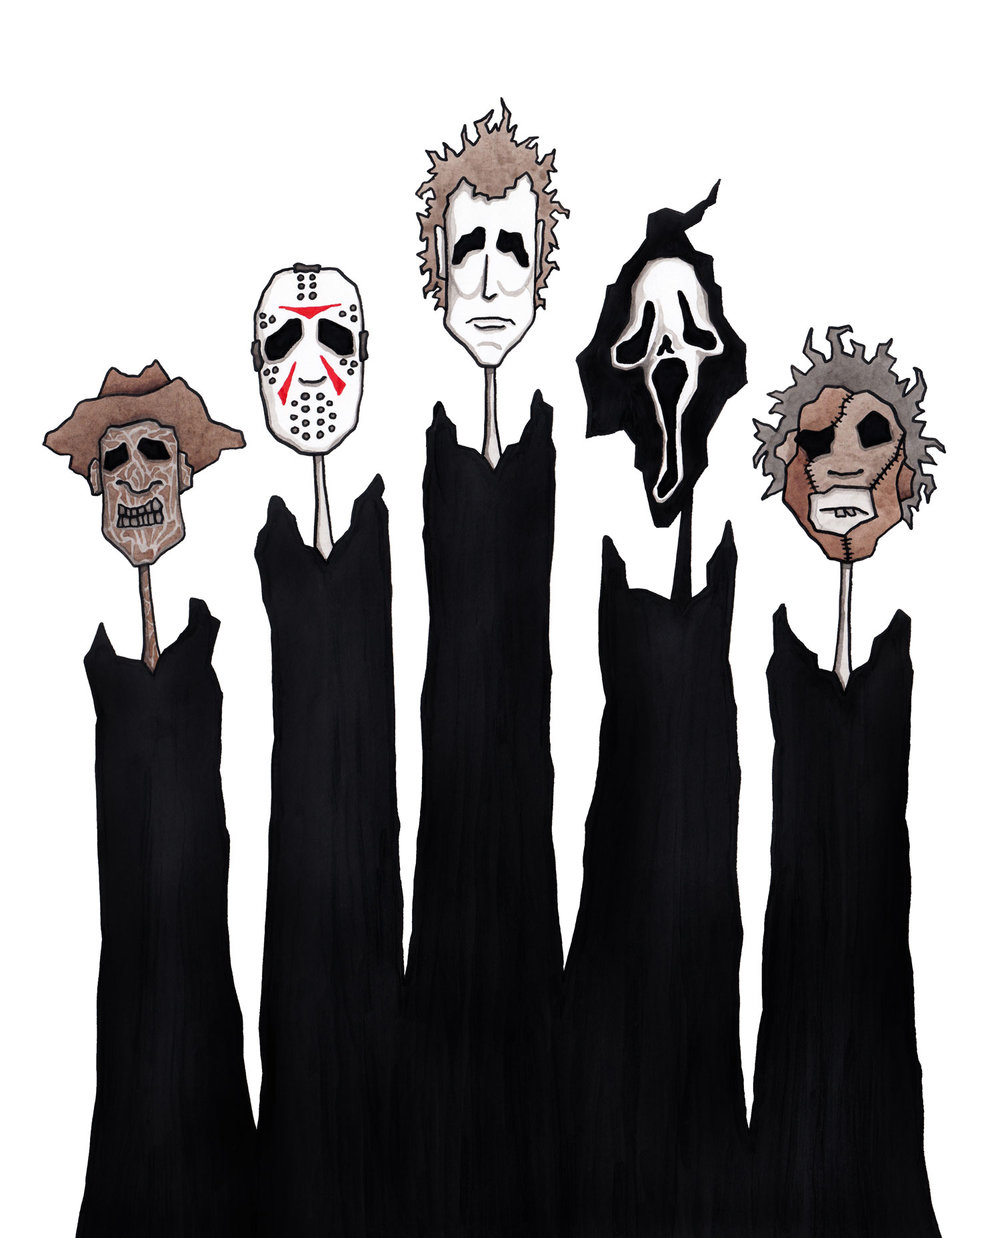 horror-freddy-kruger-michael-myers-jason-voorhees-ghostface-leatherface-illustration-matthew-woods.jpg